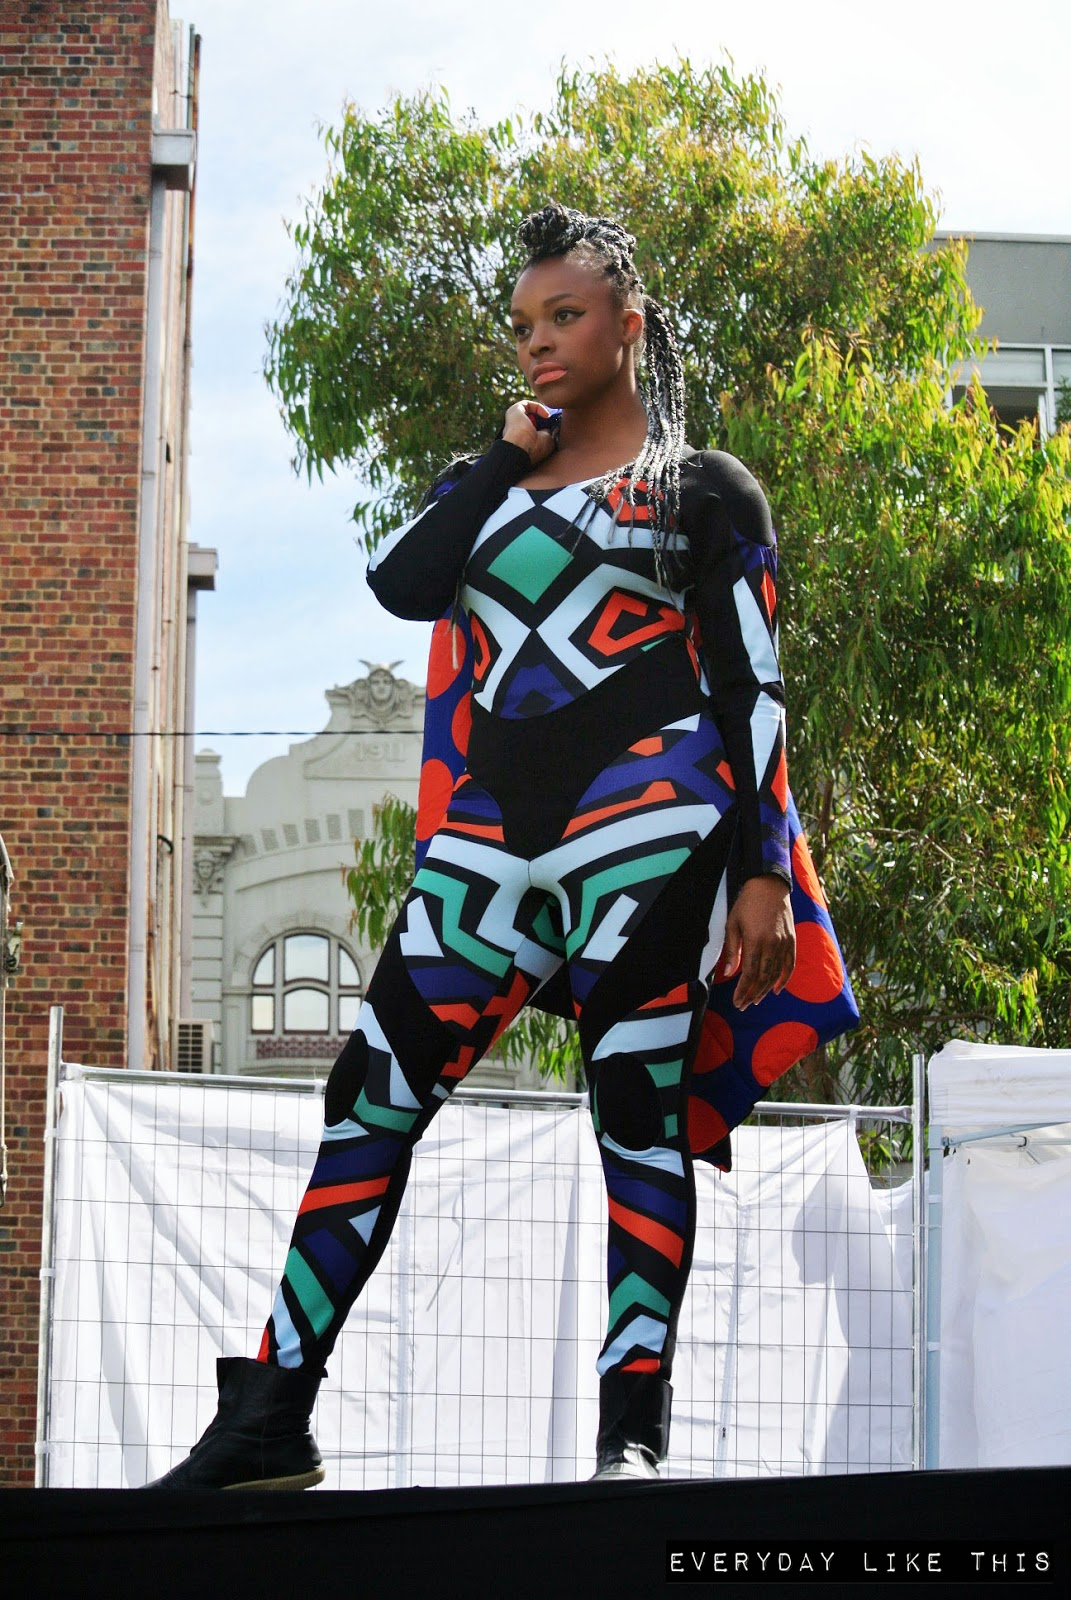 VAMFF Cultural Program - Peel St Block Party